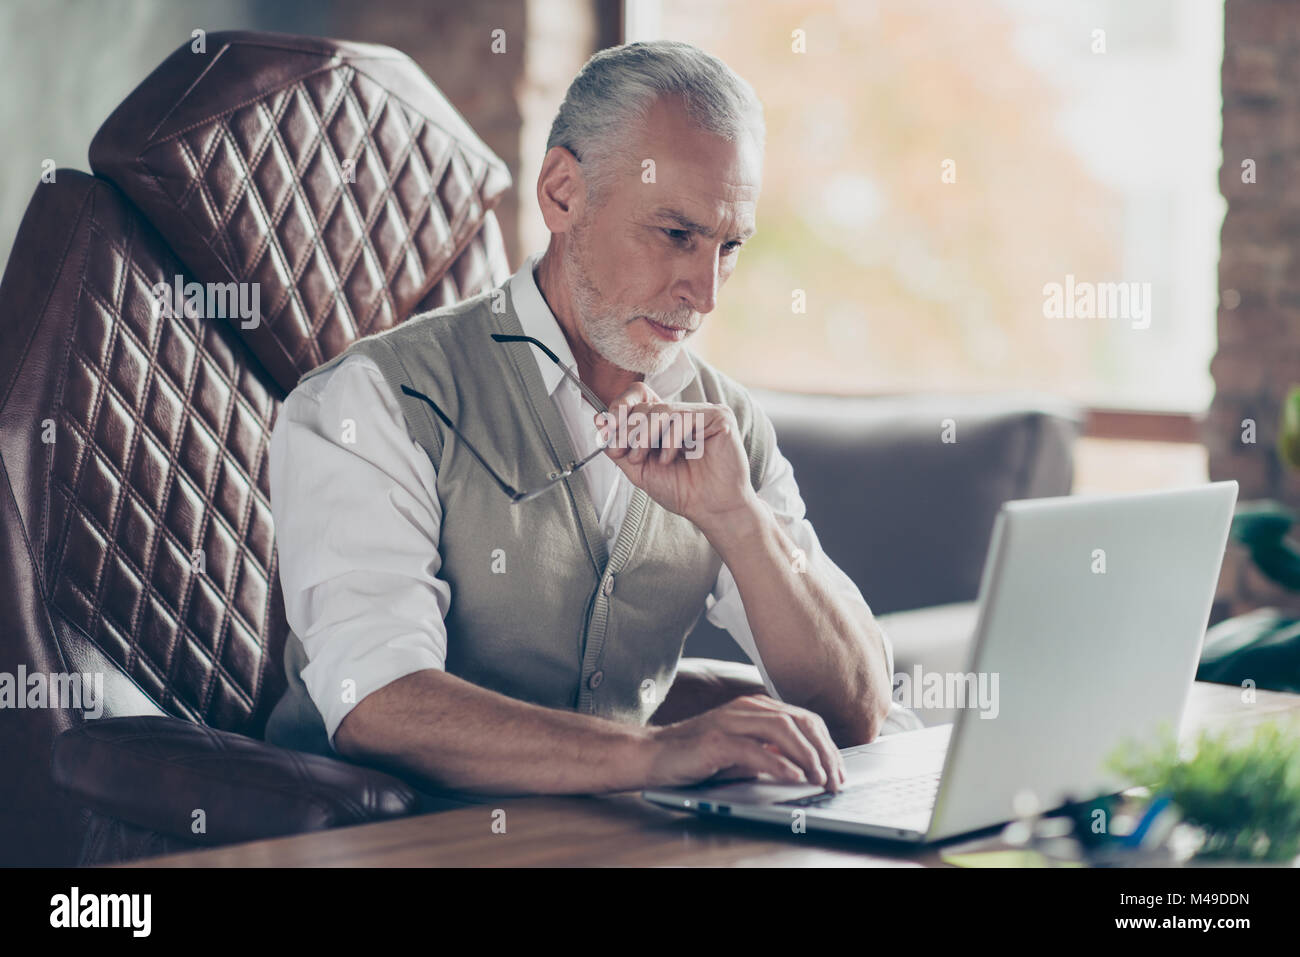 Serious outstanding concentrated respected professional intelligent head of big company wearing waistcoat and white - Stock Image